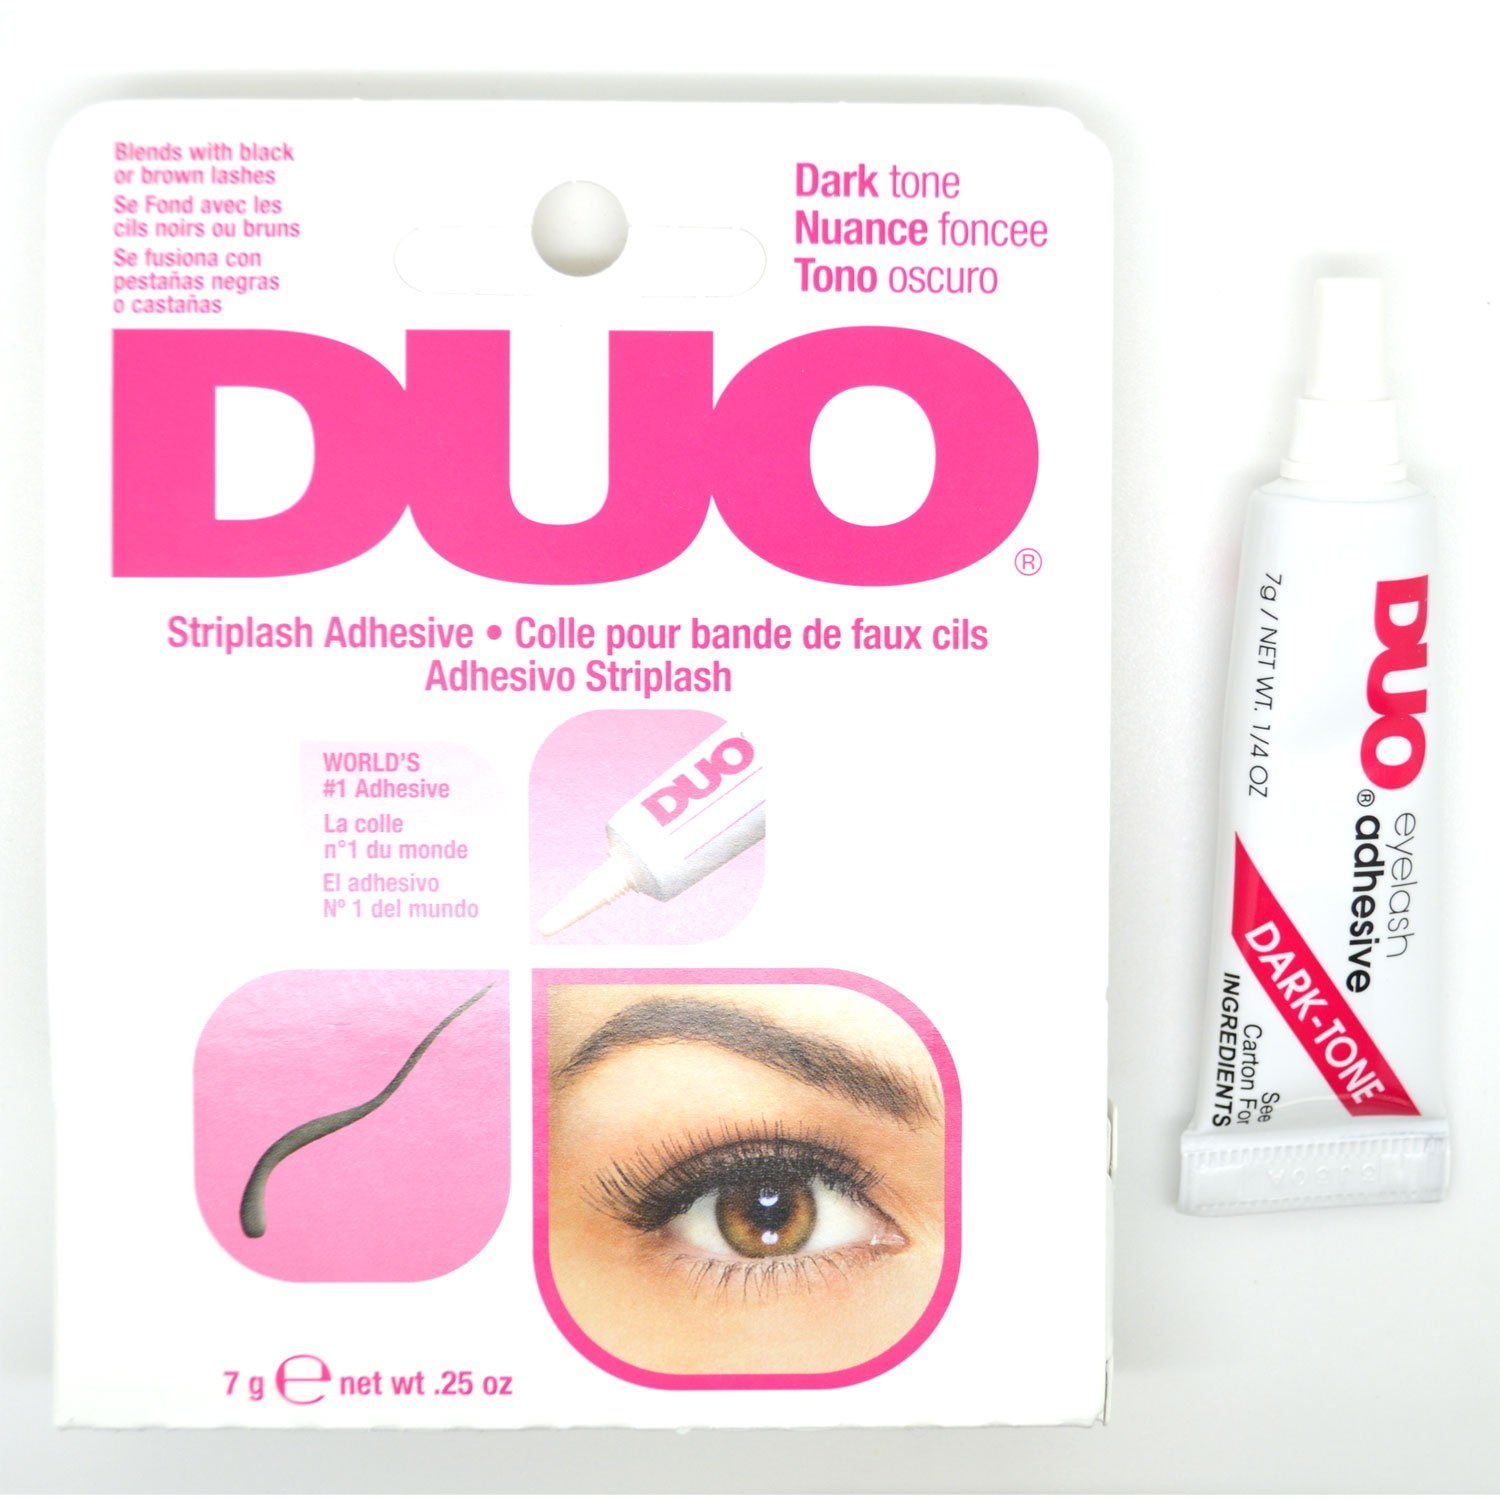 Amazon.com : 1 DUO DARK TONE STRIPLASH ADHESIVE GLUE WATERPROOF EYELASHES EYE LASH 240593 + FREE EARRING : Beauty